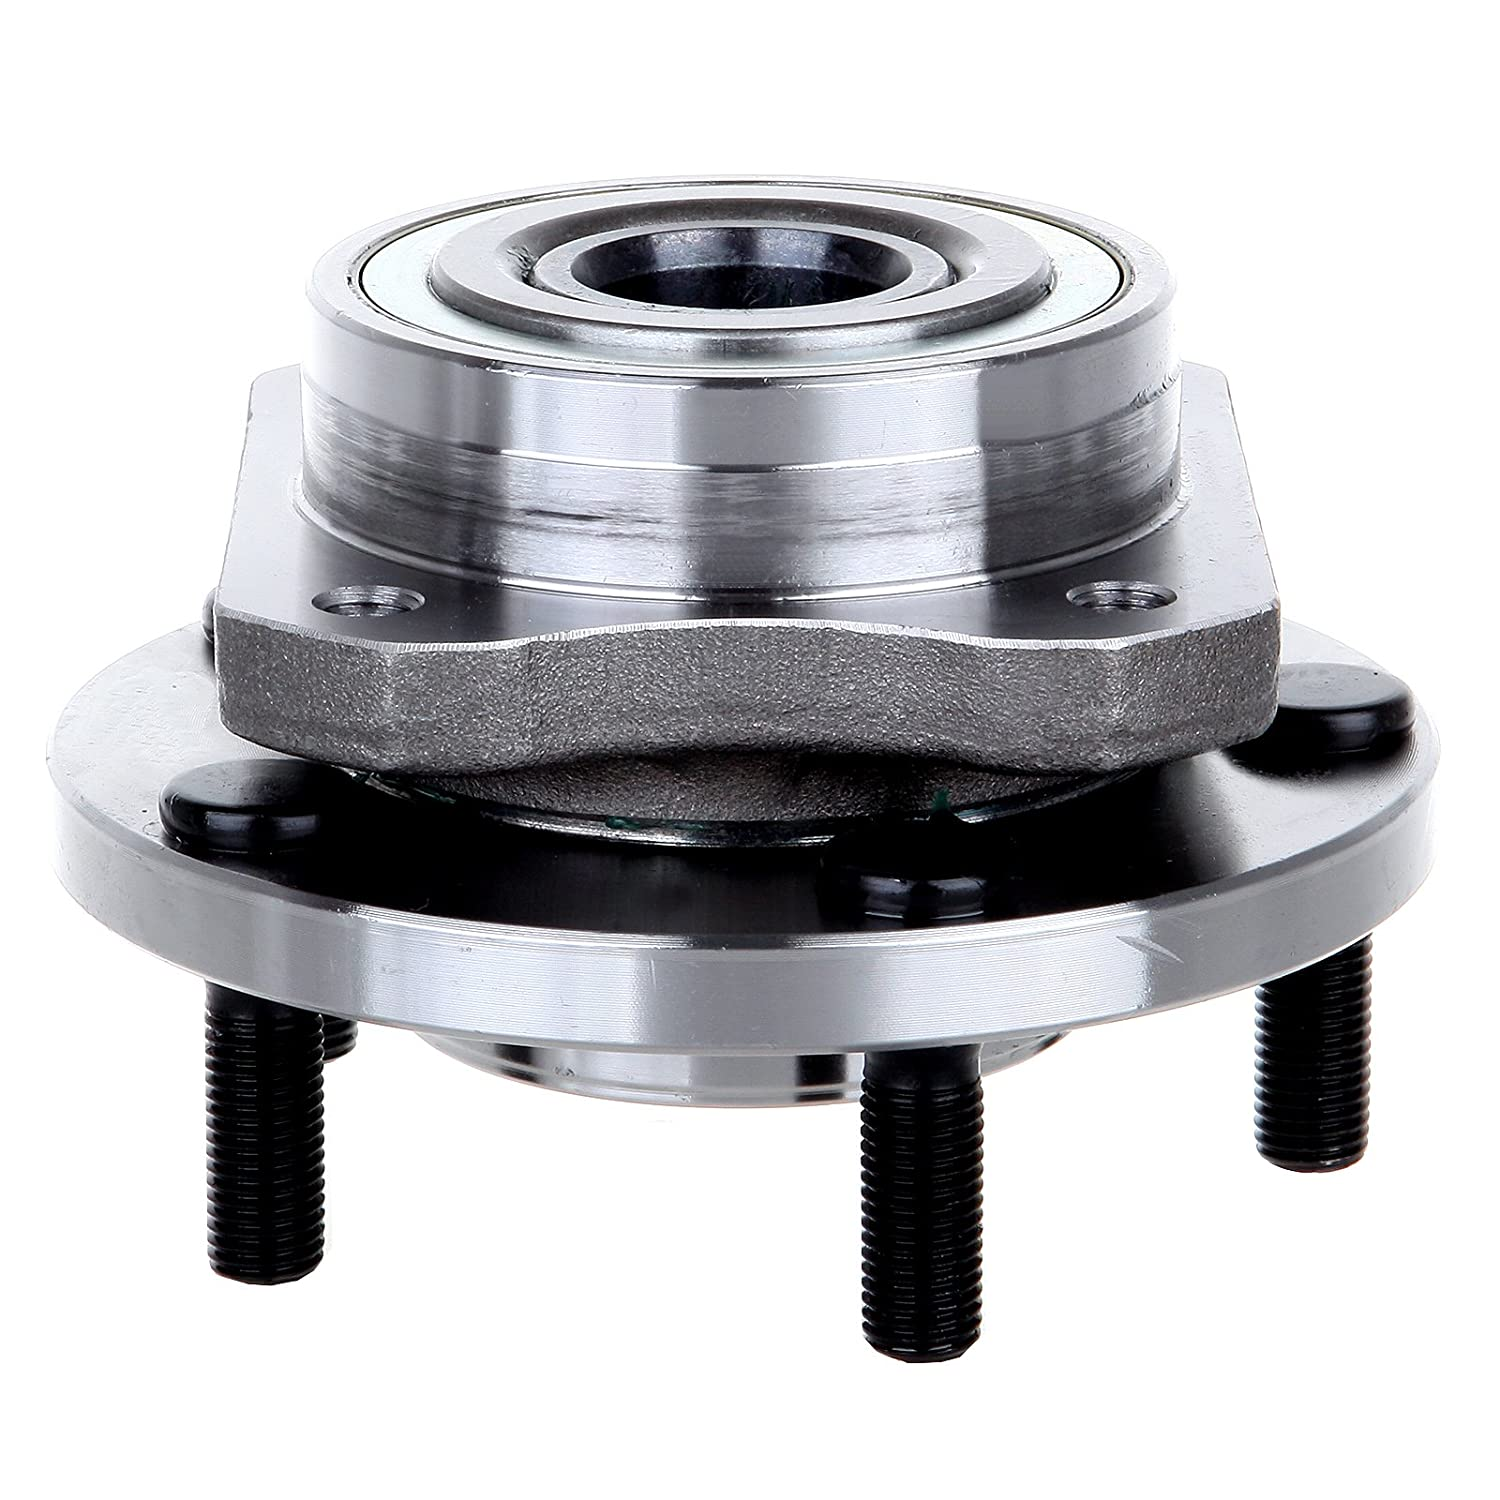 513123 Front 5 Lugs Non-ABS Sensor Fit Chrysler Town//Dodge Caravan//Plymouth Grand Voyager//Plymouth Voyager 1996-2007 AUTOMUTO Wheel Hub Bearing